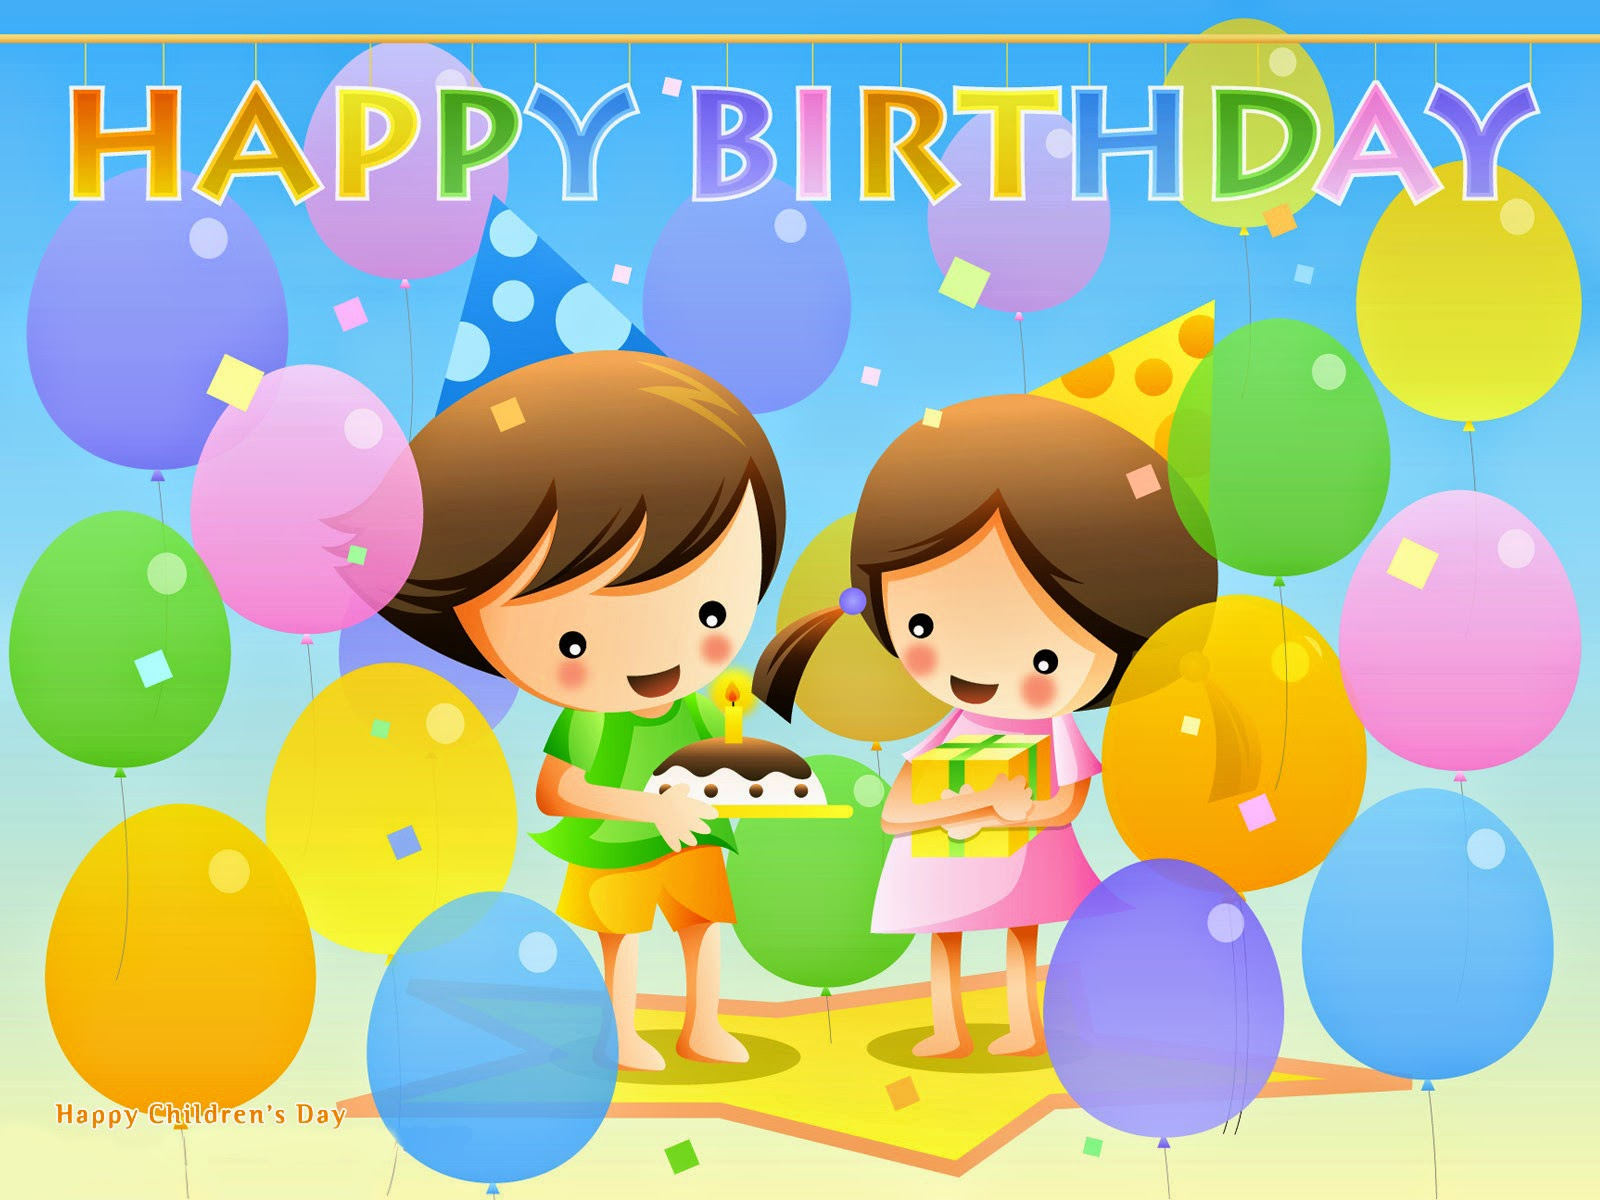 happy-birthday-cartoon-kids-with-cake-gift-wallpaper.jpg